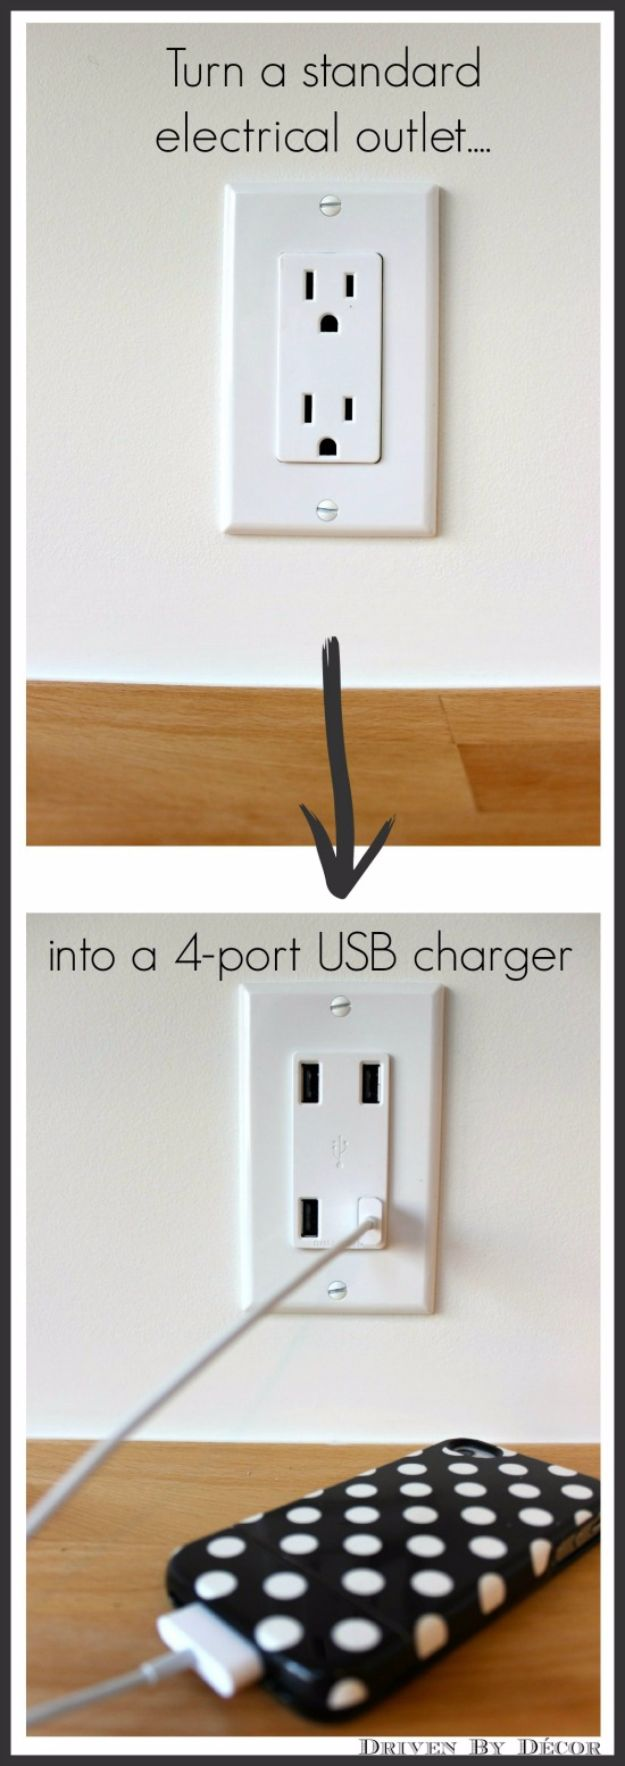 DIY Gadgets - Turn A Standard Electrical Outlet Into A 4-Port USB Charger - Homemade Gadget Ideas and Projects for Men, Women, Teens and Kids - Steampunk Inventions, How To Build Easy Electronics, Cool Spy Gear and Do It Yourself Tech Toys http://diyjoy.com/diy-gadgets